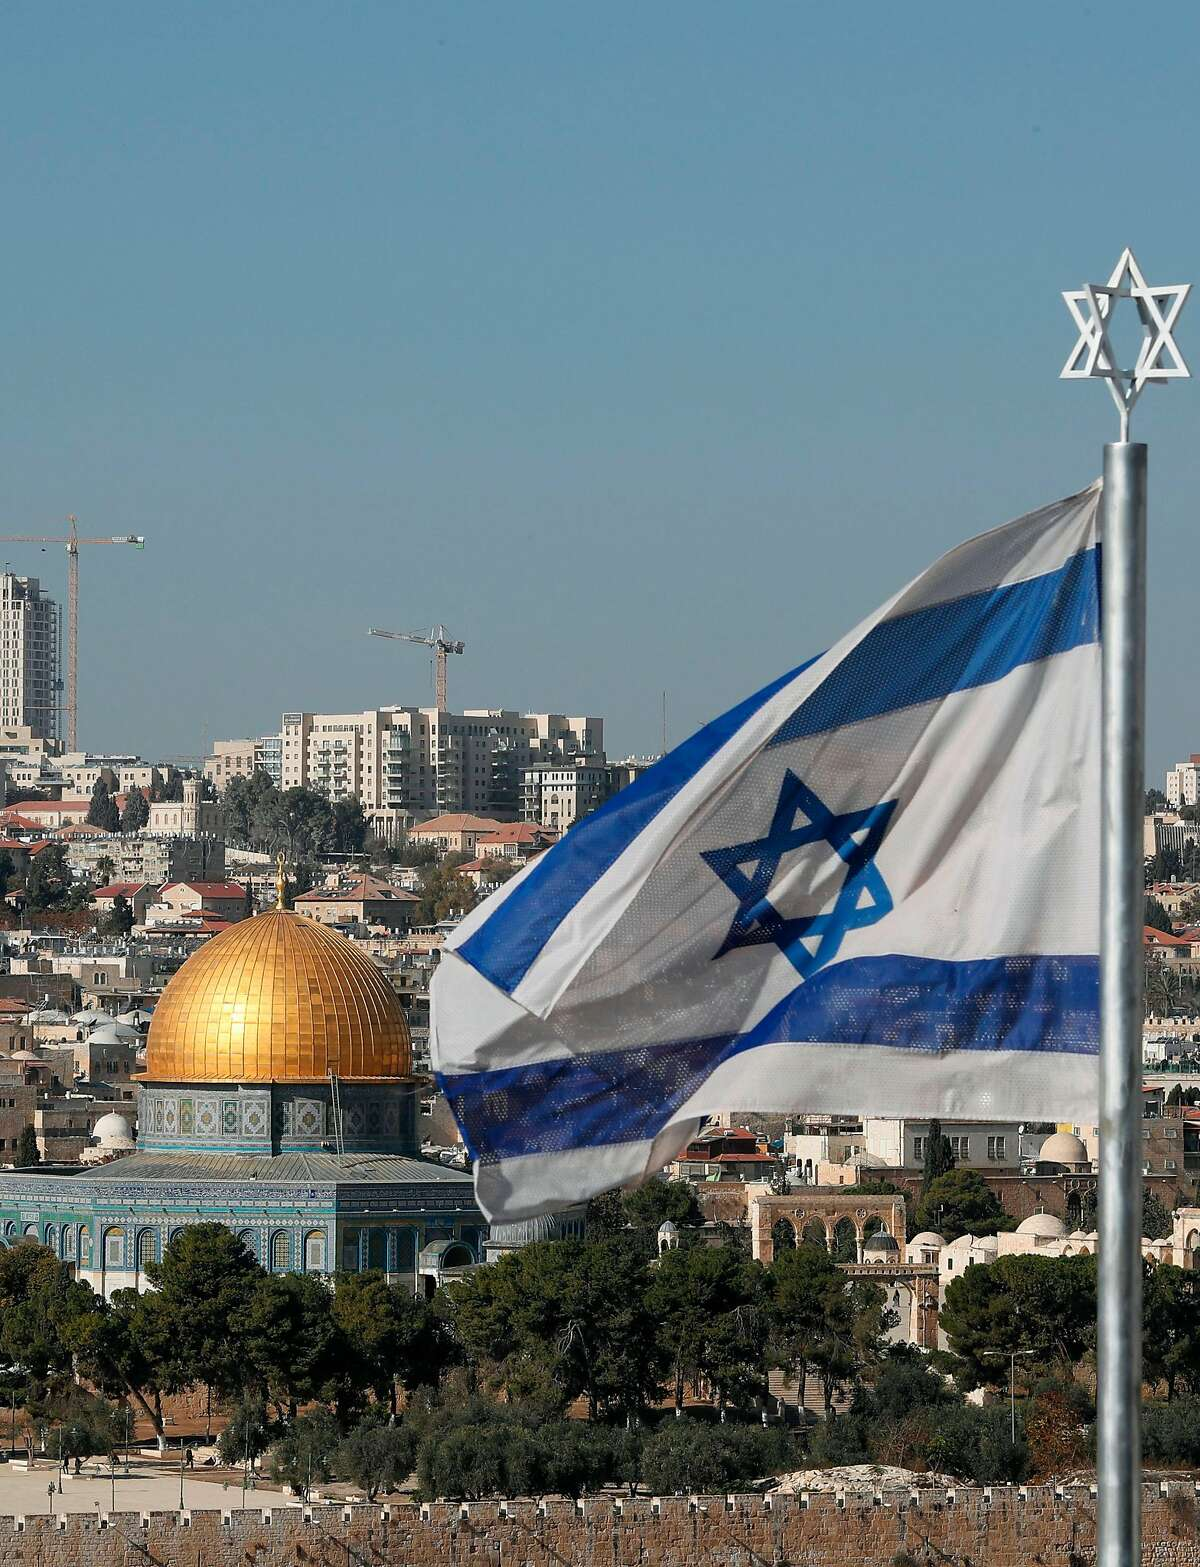 The Israeli flag flutters in front of the Dome of the Rock mosque and th city of Jerusalem, on December 1, 2017. Two Israeli cabinet ministers said on November 30 that they hoped US President Donald Trump was about to move his country's embassy from Tel Aviv to Jerusalem, as a decision deadline neared. The issue is deeply controversial. Shifting the building could be seen as a de facto recognition of Israel's claim over the whole city, including predominantly Palestinian east Jerusalem. / AFP PHOTO / THOMAS COEXTHOMAS COEX/AFP/Getty Images